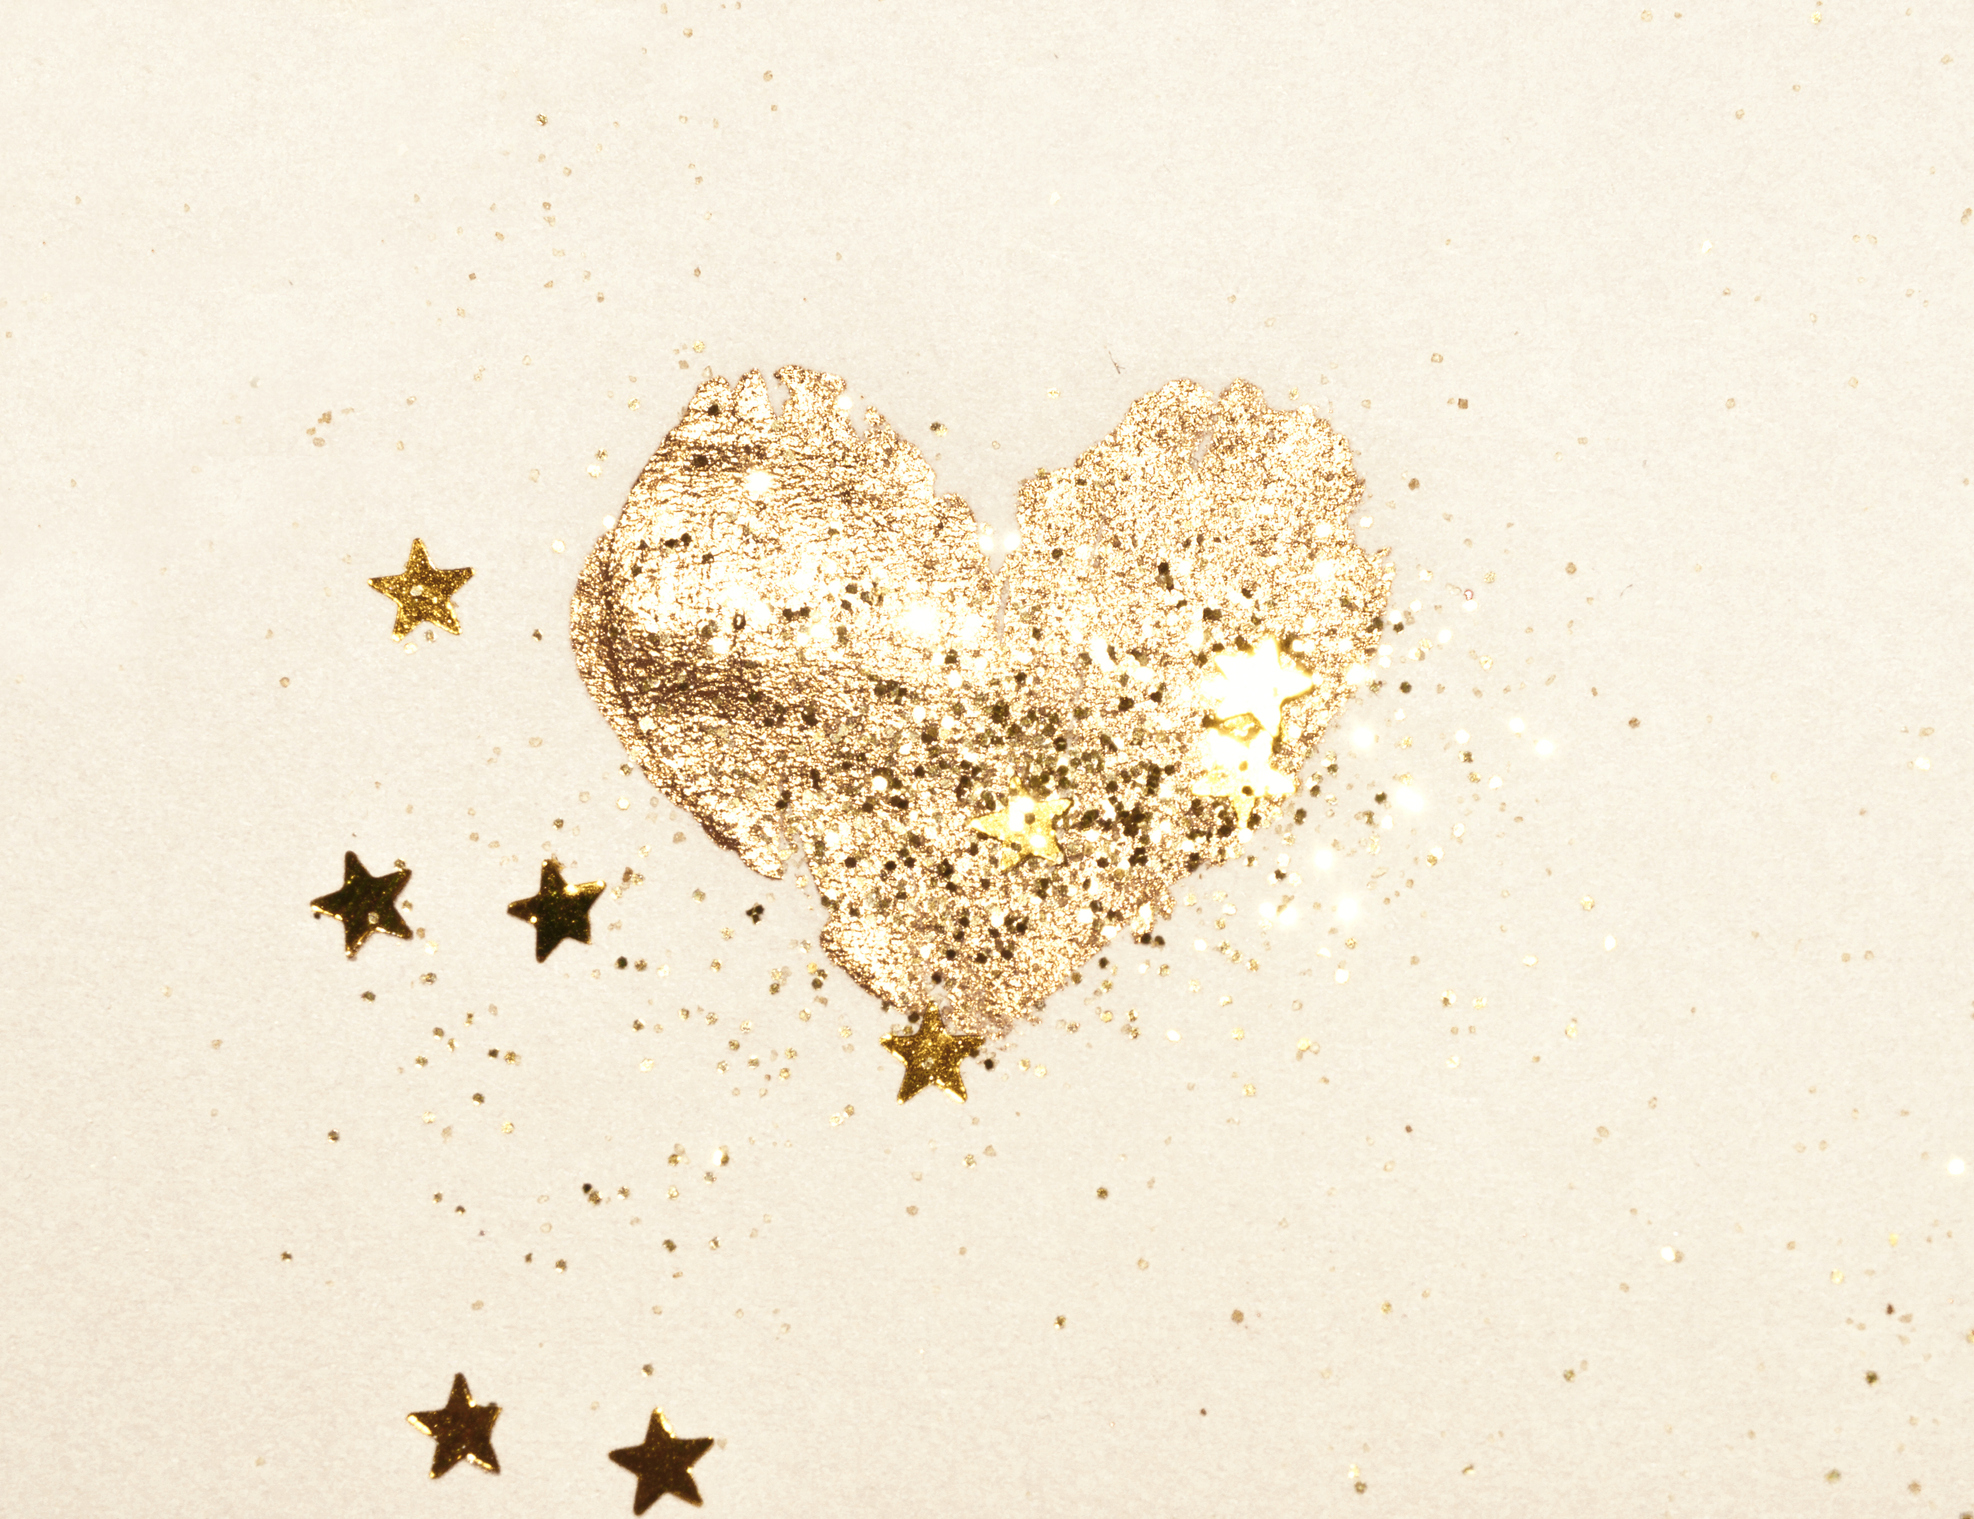 Abstract shiny watercolor heart and golden glitter in vintage nostalgic colors.